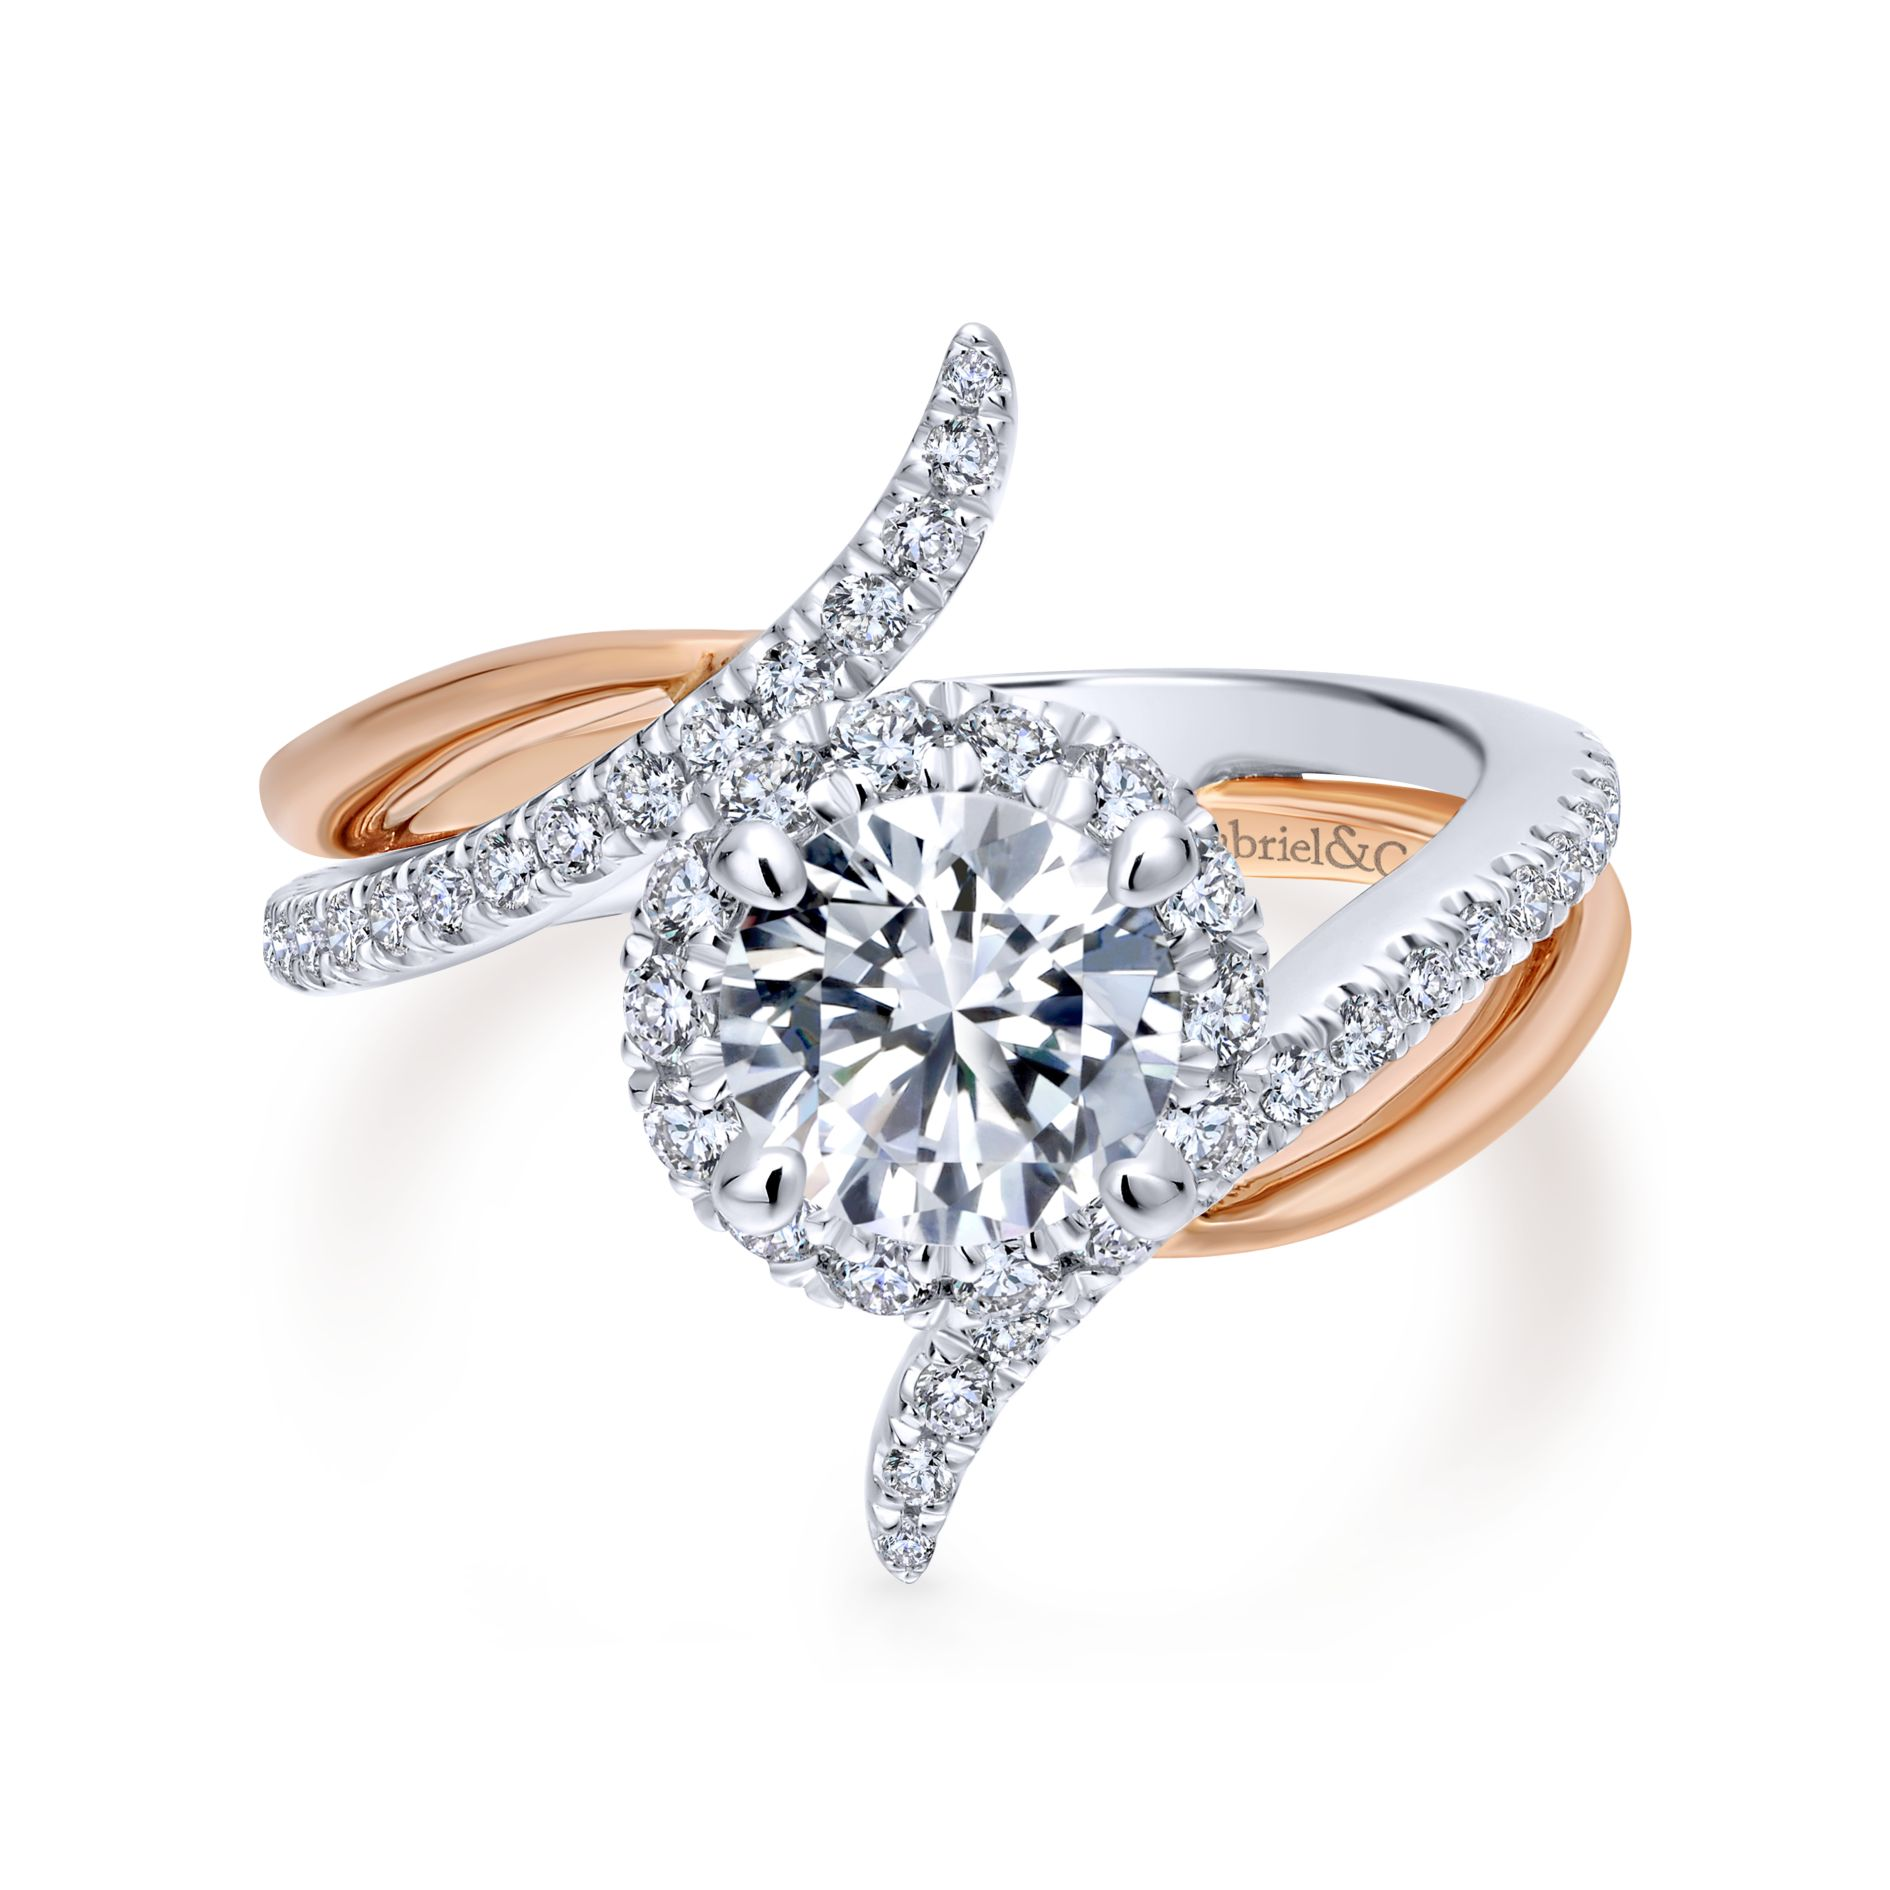 WHITE/ROSE GOLD ROUND HALO DIAMOND ENGAGEMENT RING by Gabriel & Co